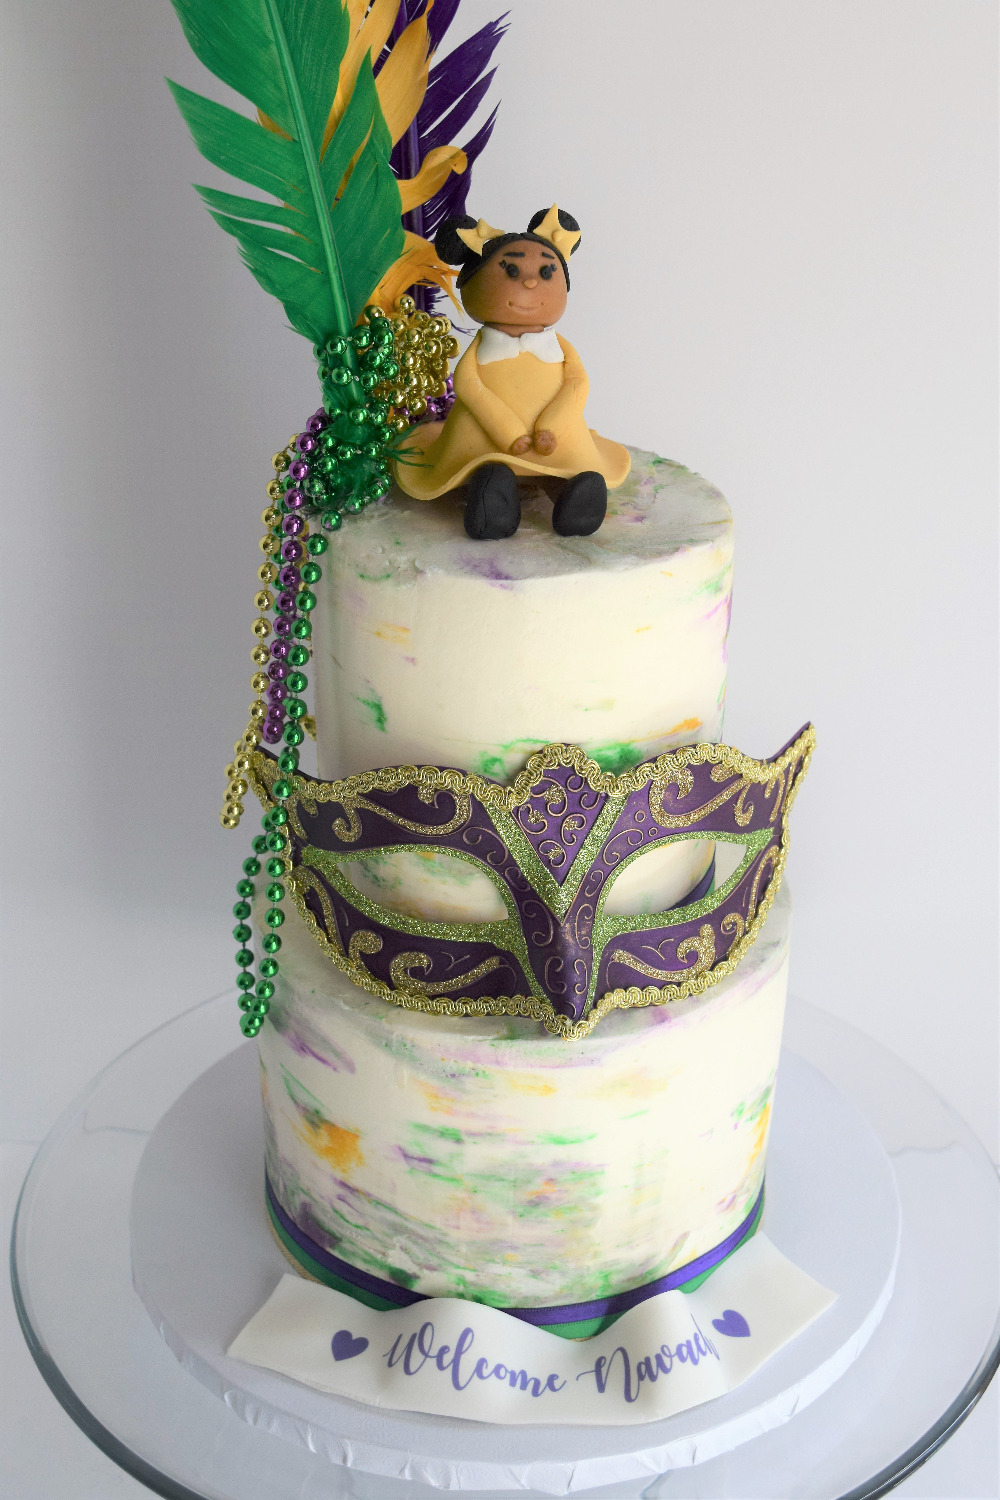 Mardi Gras Themed Baby Shower Cake